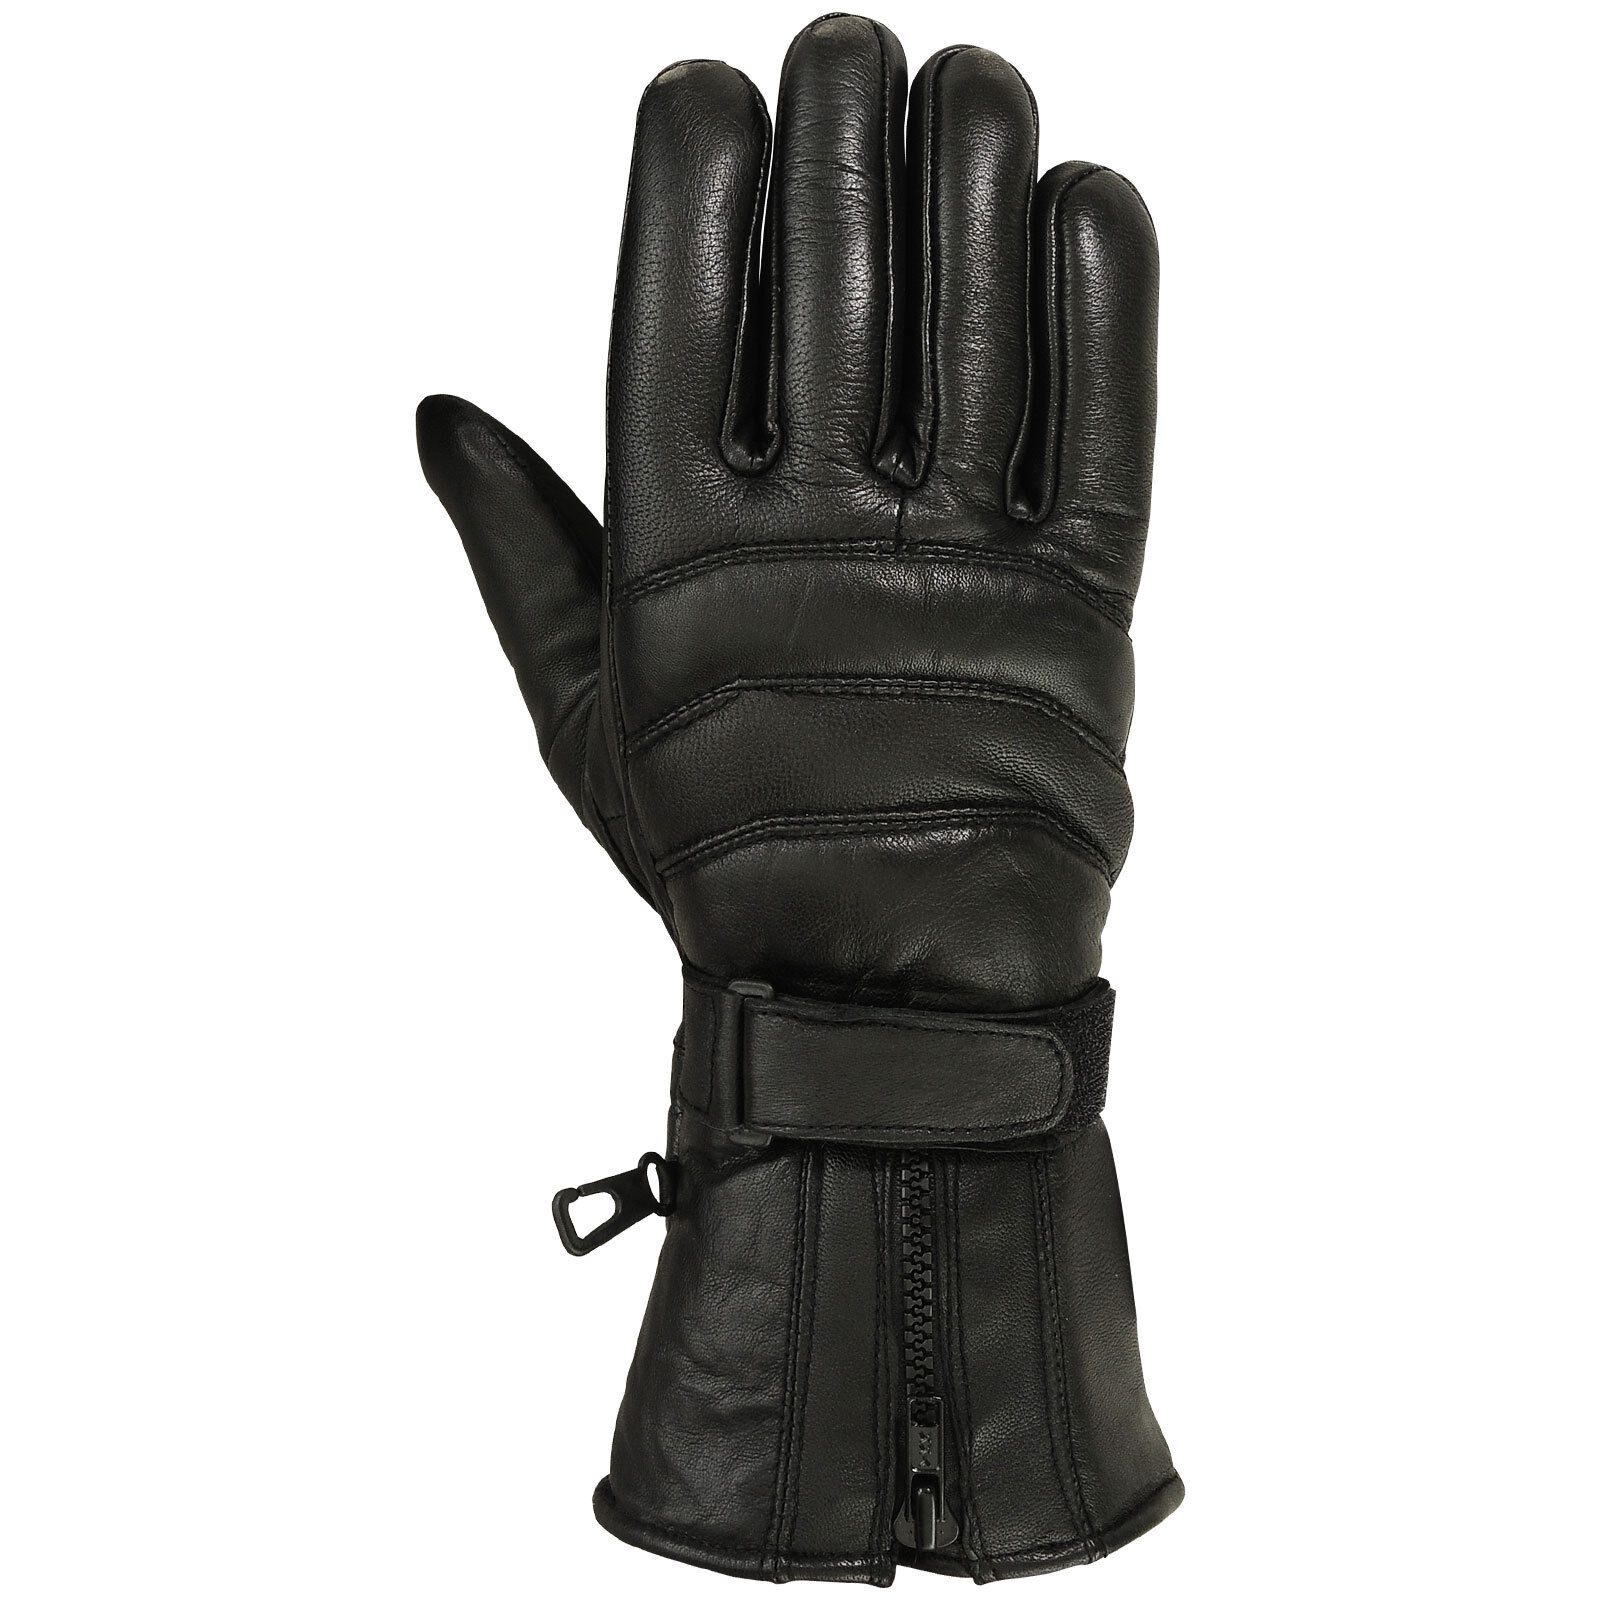 Mens Genuine Leather Motorcycle Gloves Motorbike Riding Glove Thermal Lining